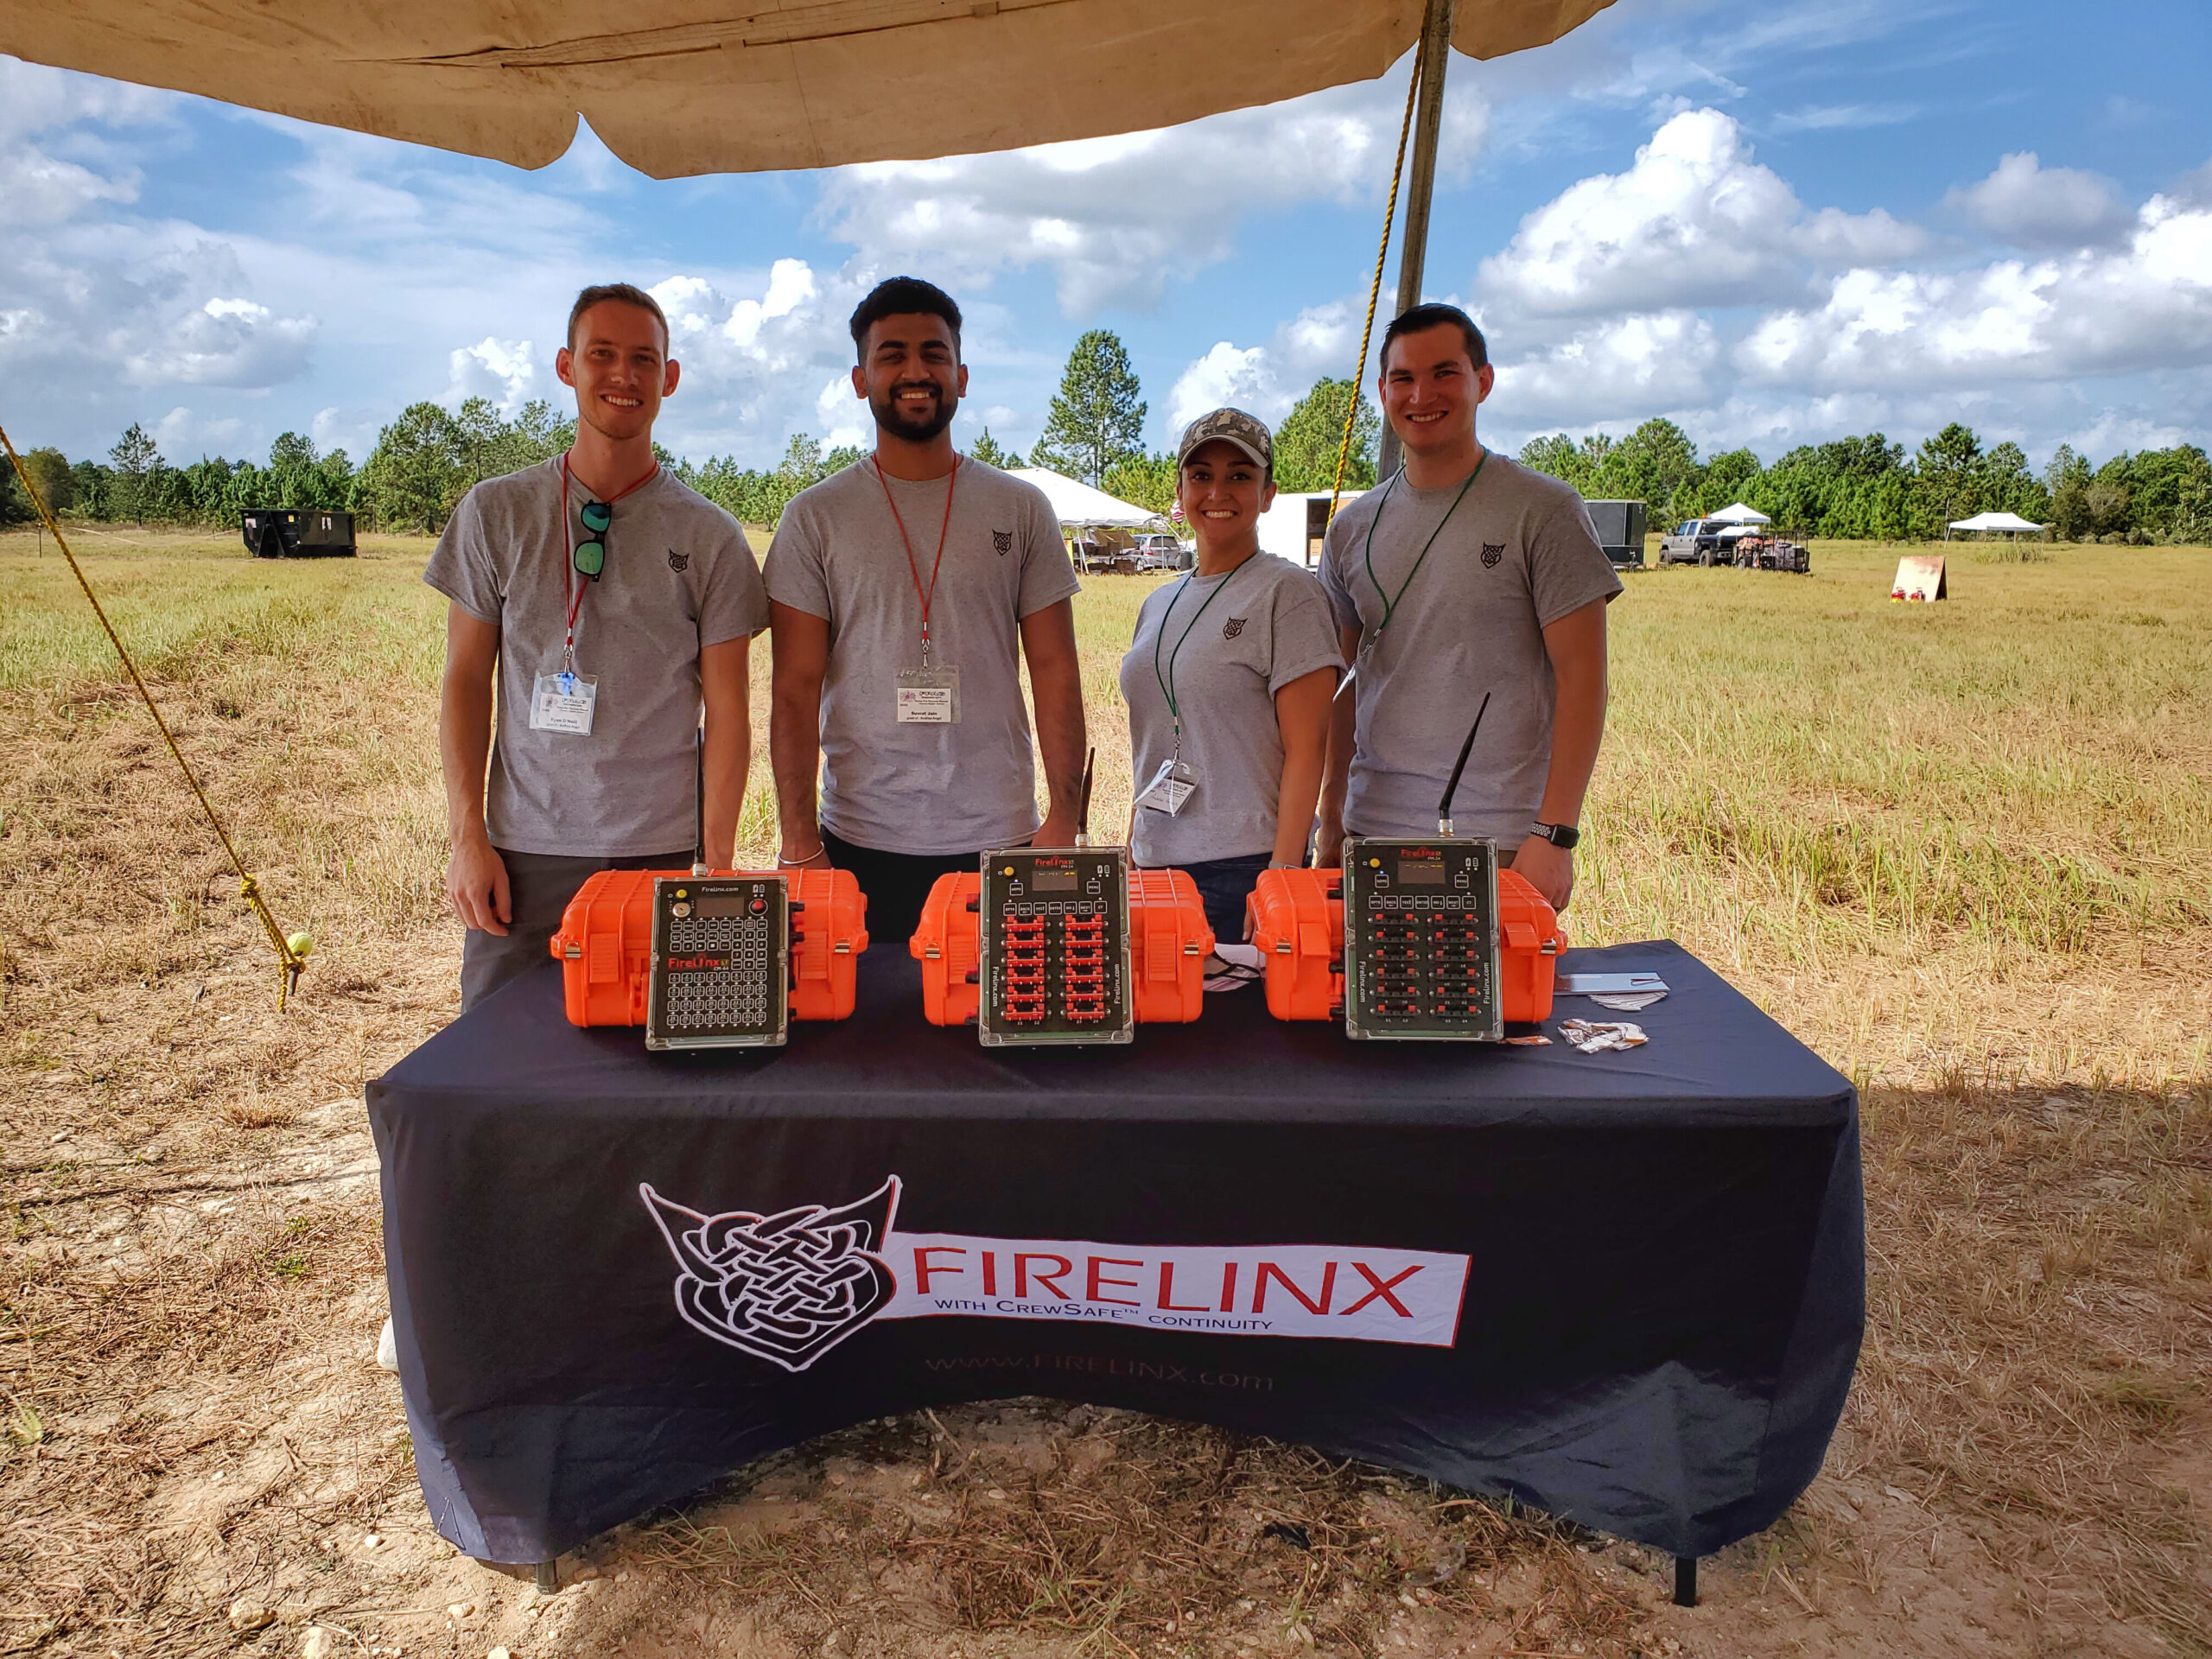 Firelinx Team at the Florida Pyrotechnics Arts Guild November 2020 event